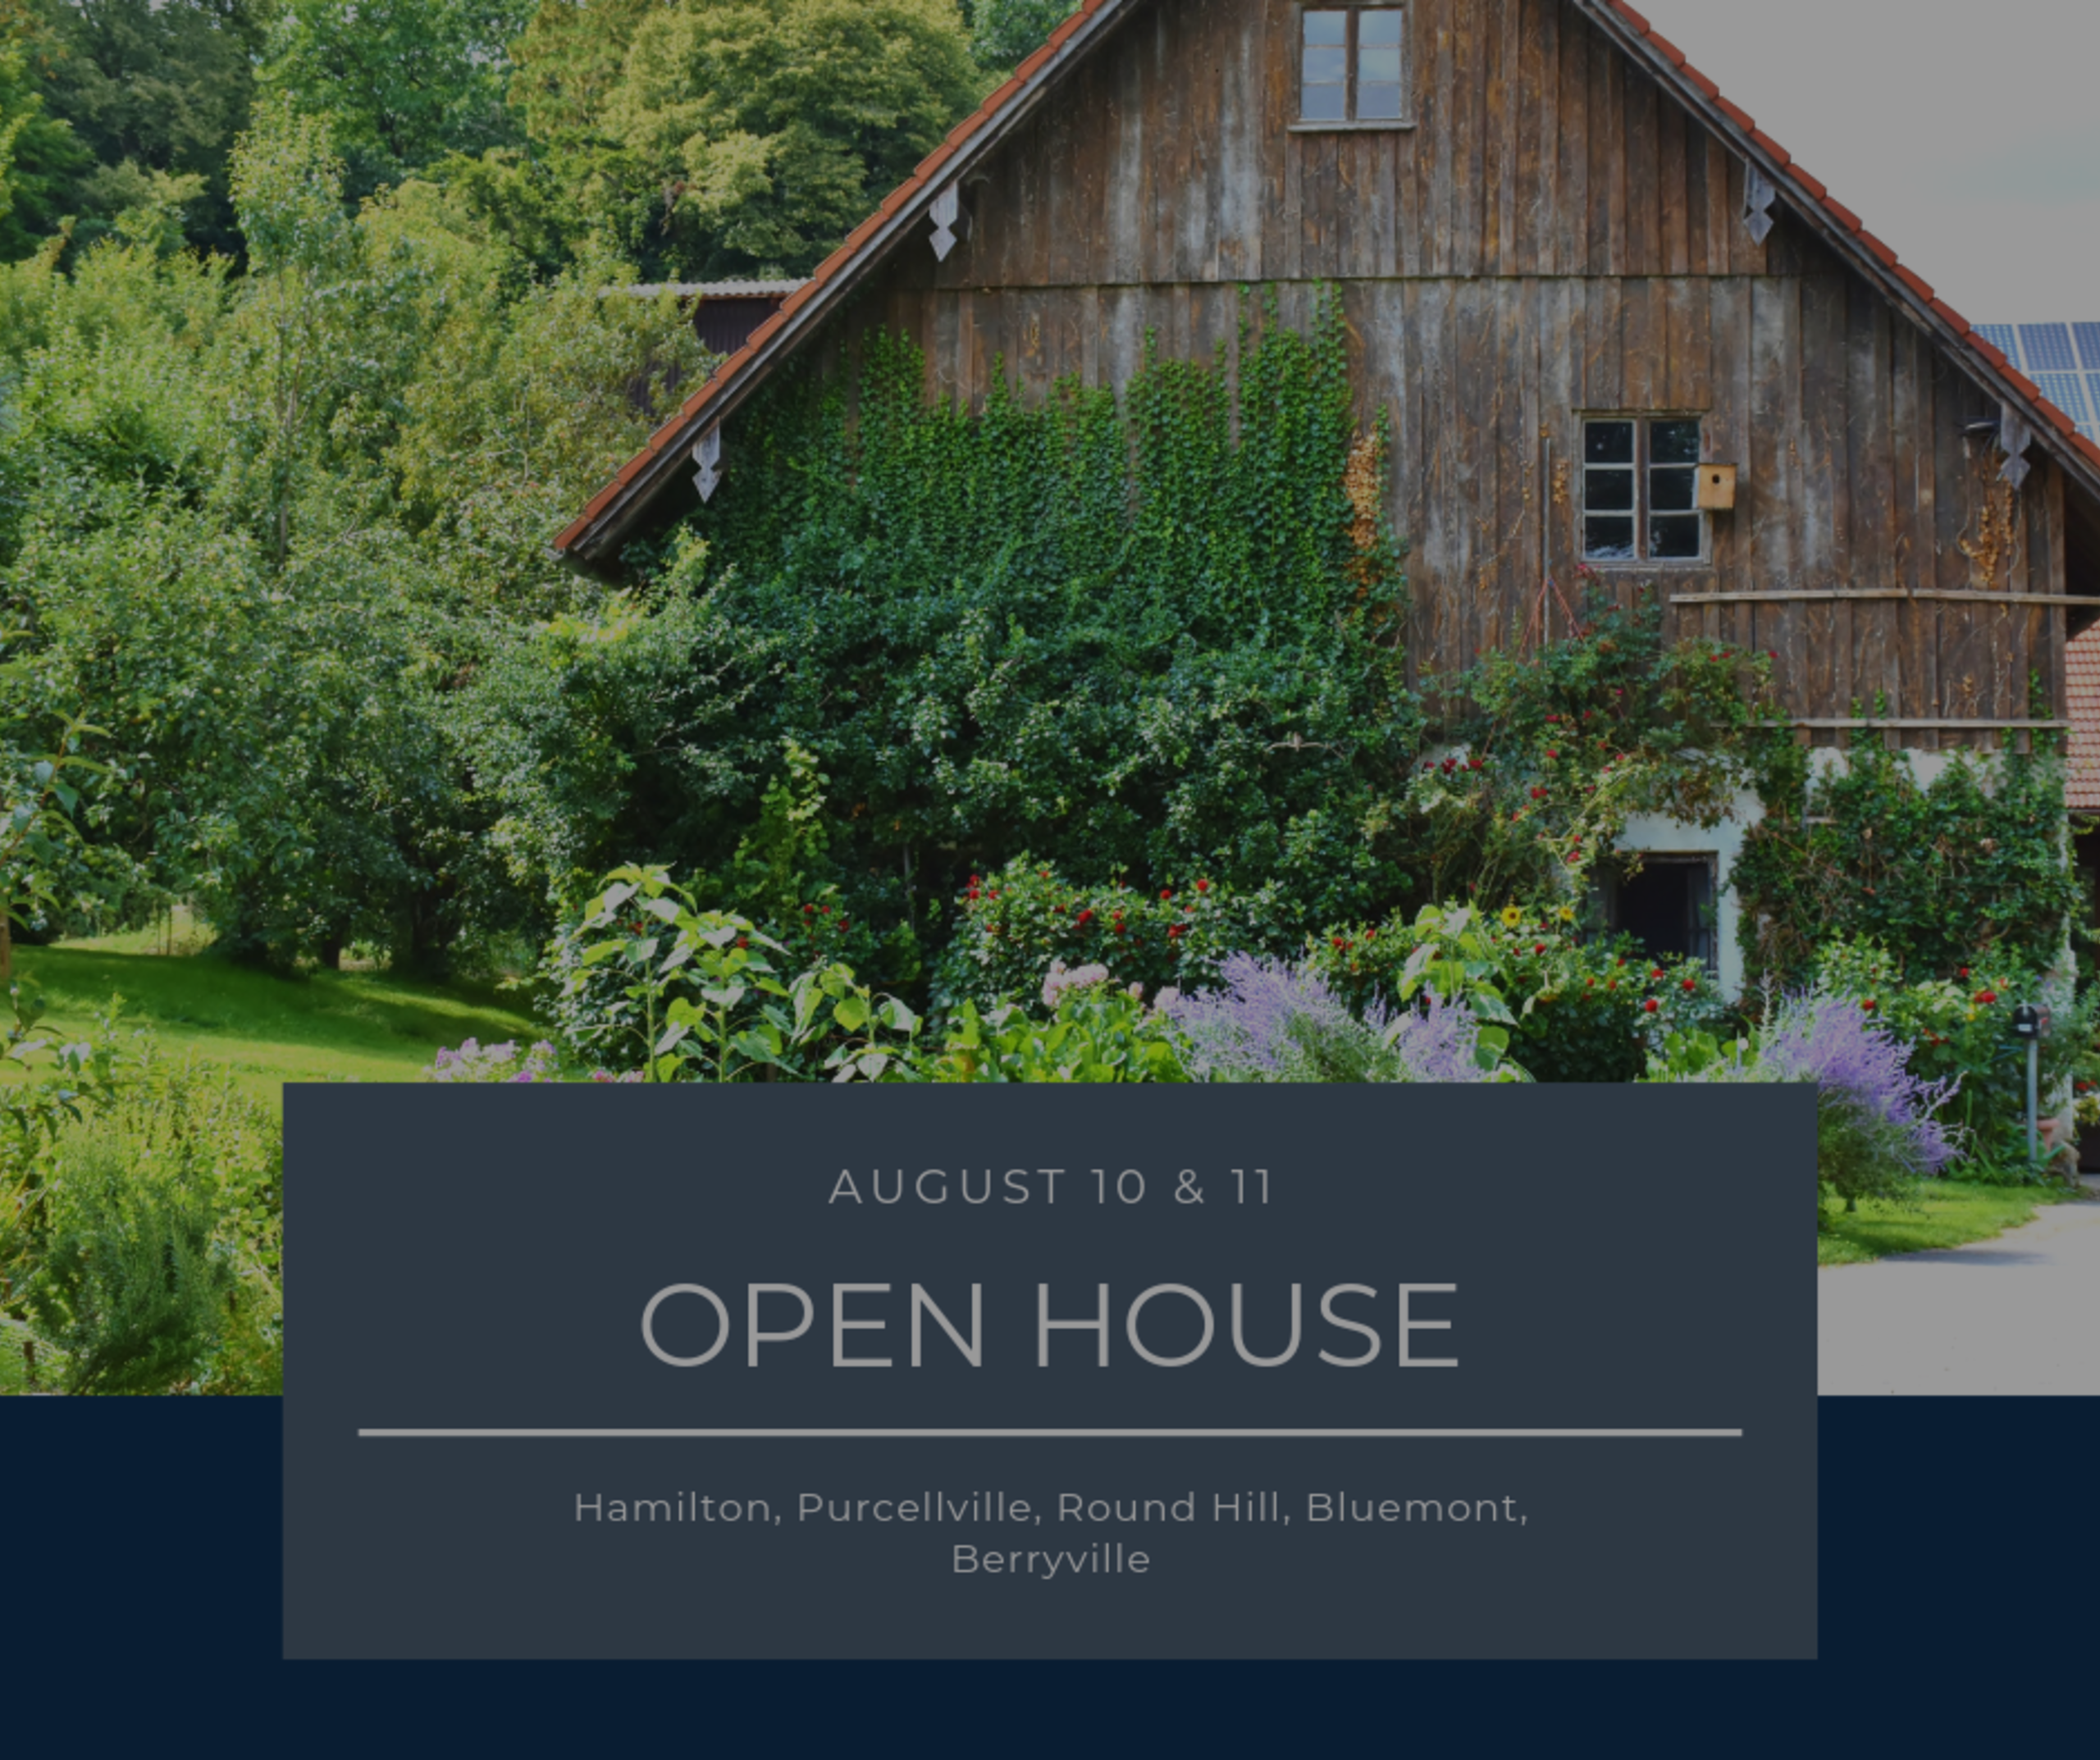 Open House List 8/10/19 – 8/11/19